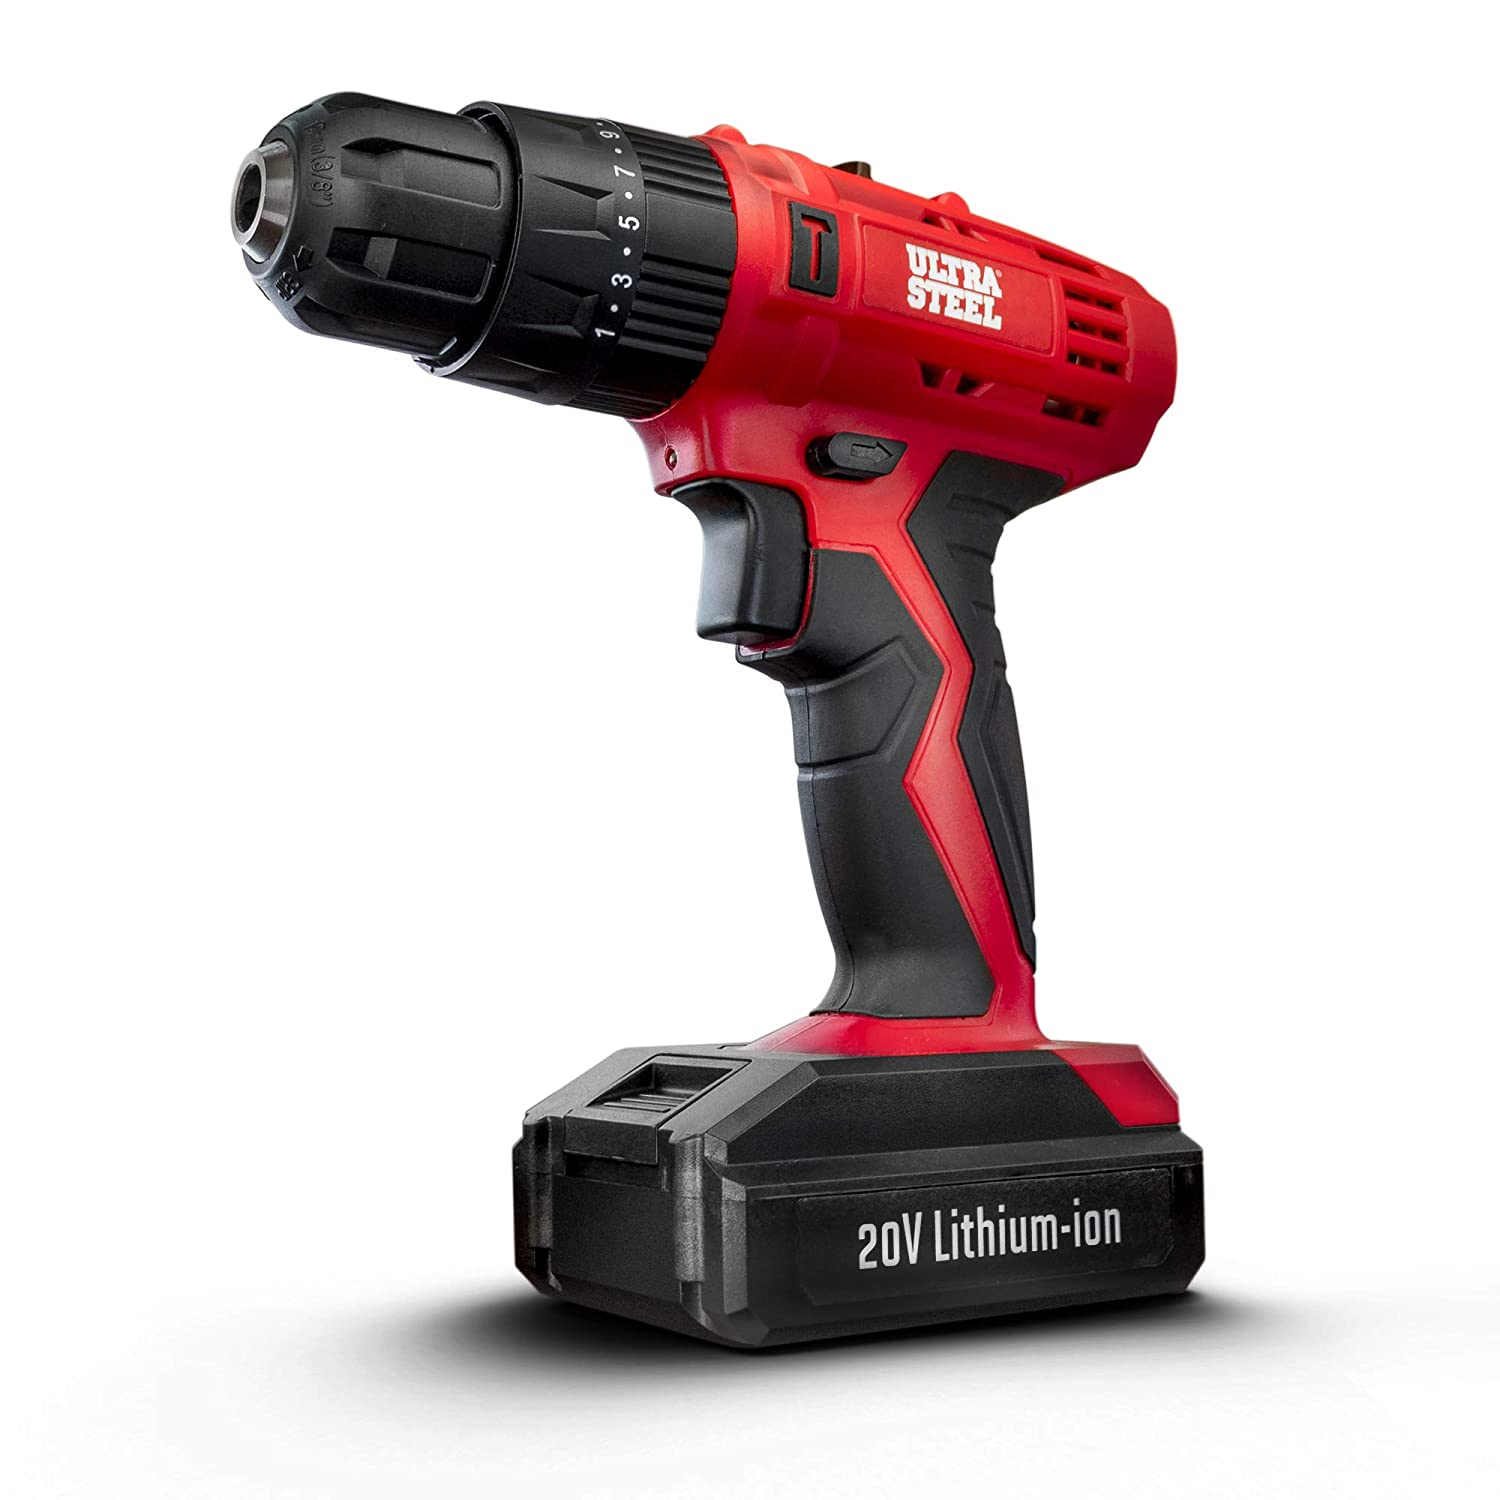 ULTRA STEEL 20V 1.3Ah Lithium-Ion 3 8 Cordless Hammer Drill Driver, 2-Speed, Adjustable Impact Function, 21 1 Position, LED Light, Keyless Chuck, 1-Year Warranty, Battery w Charger Included AQ75024G